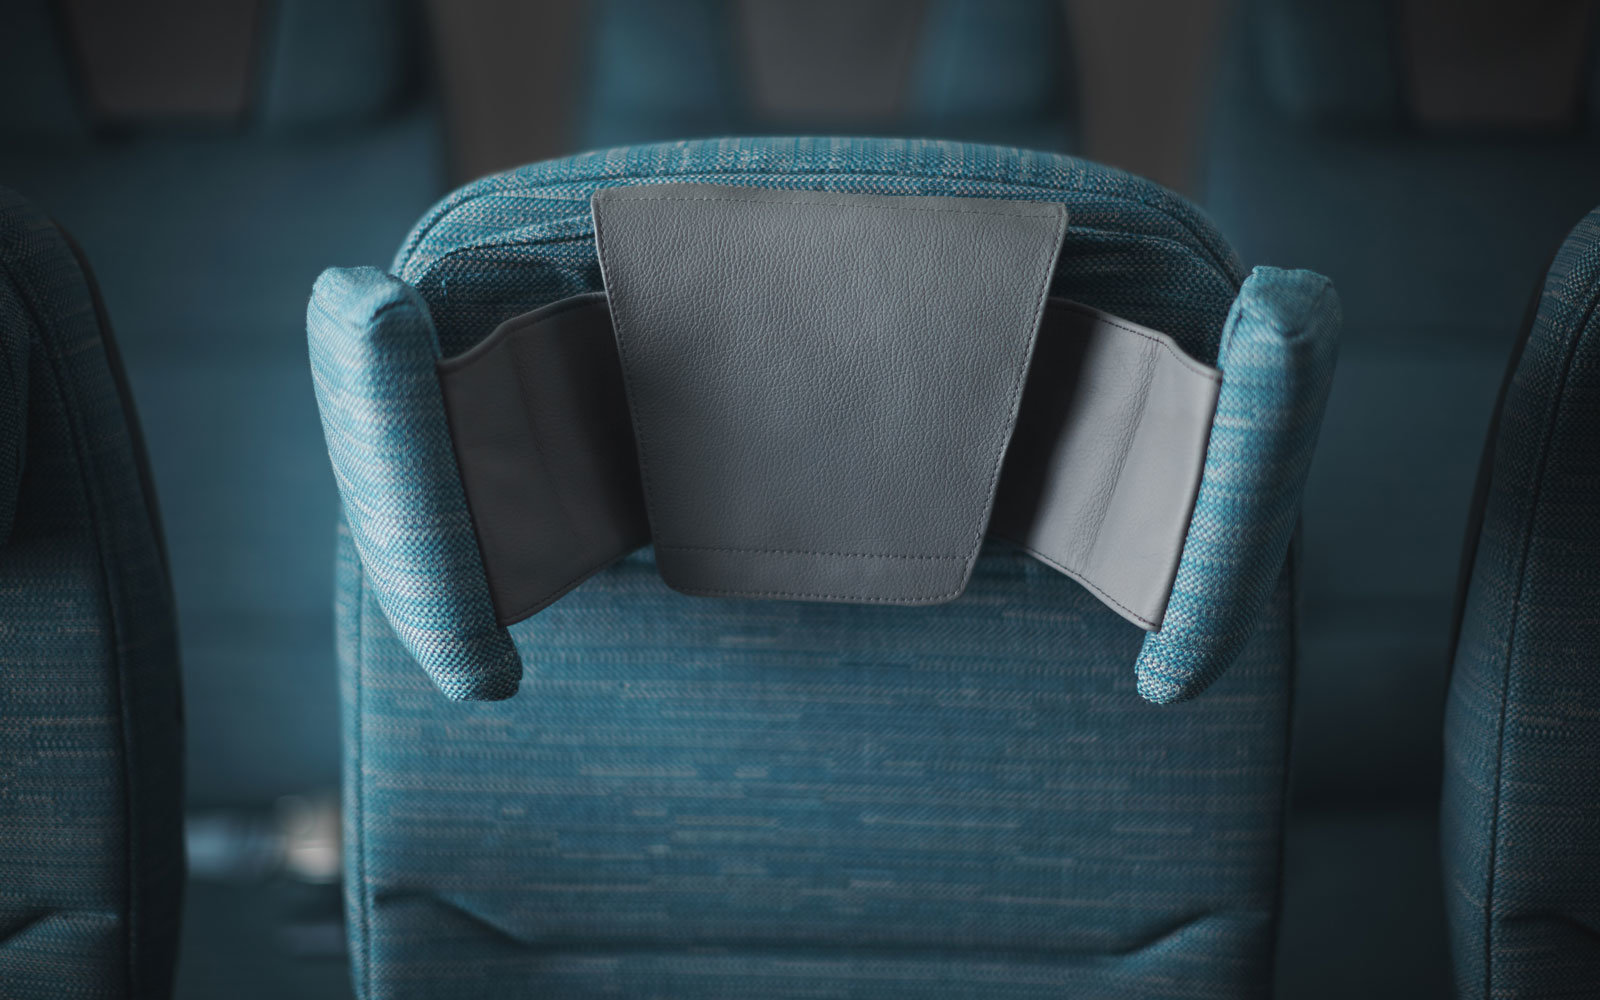 Cathay Pacific's headrests move six ways.